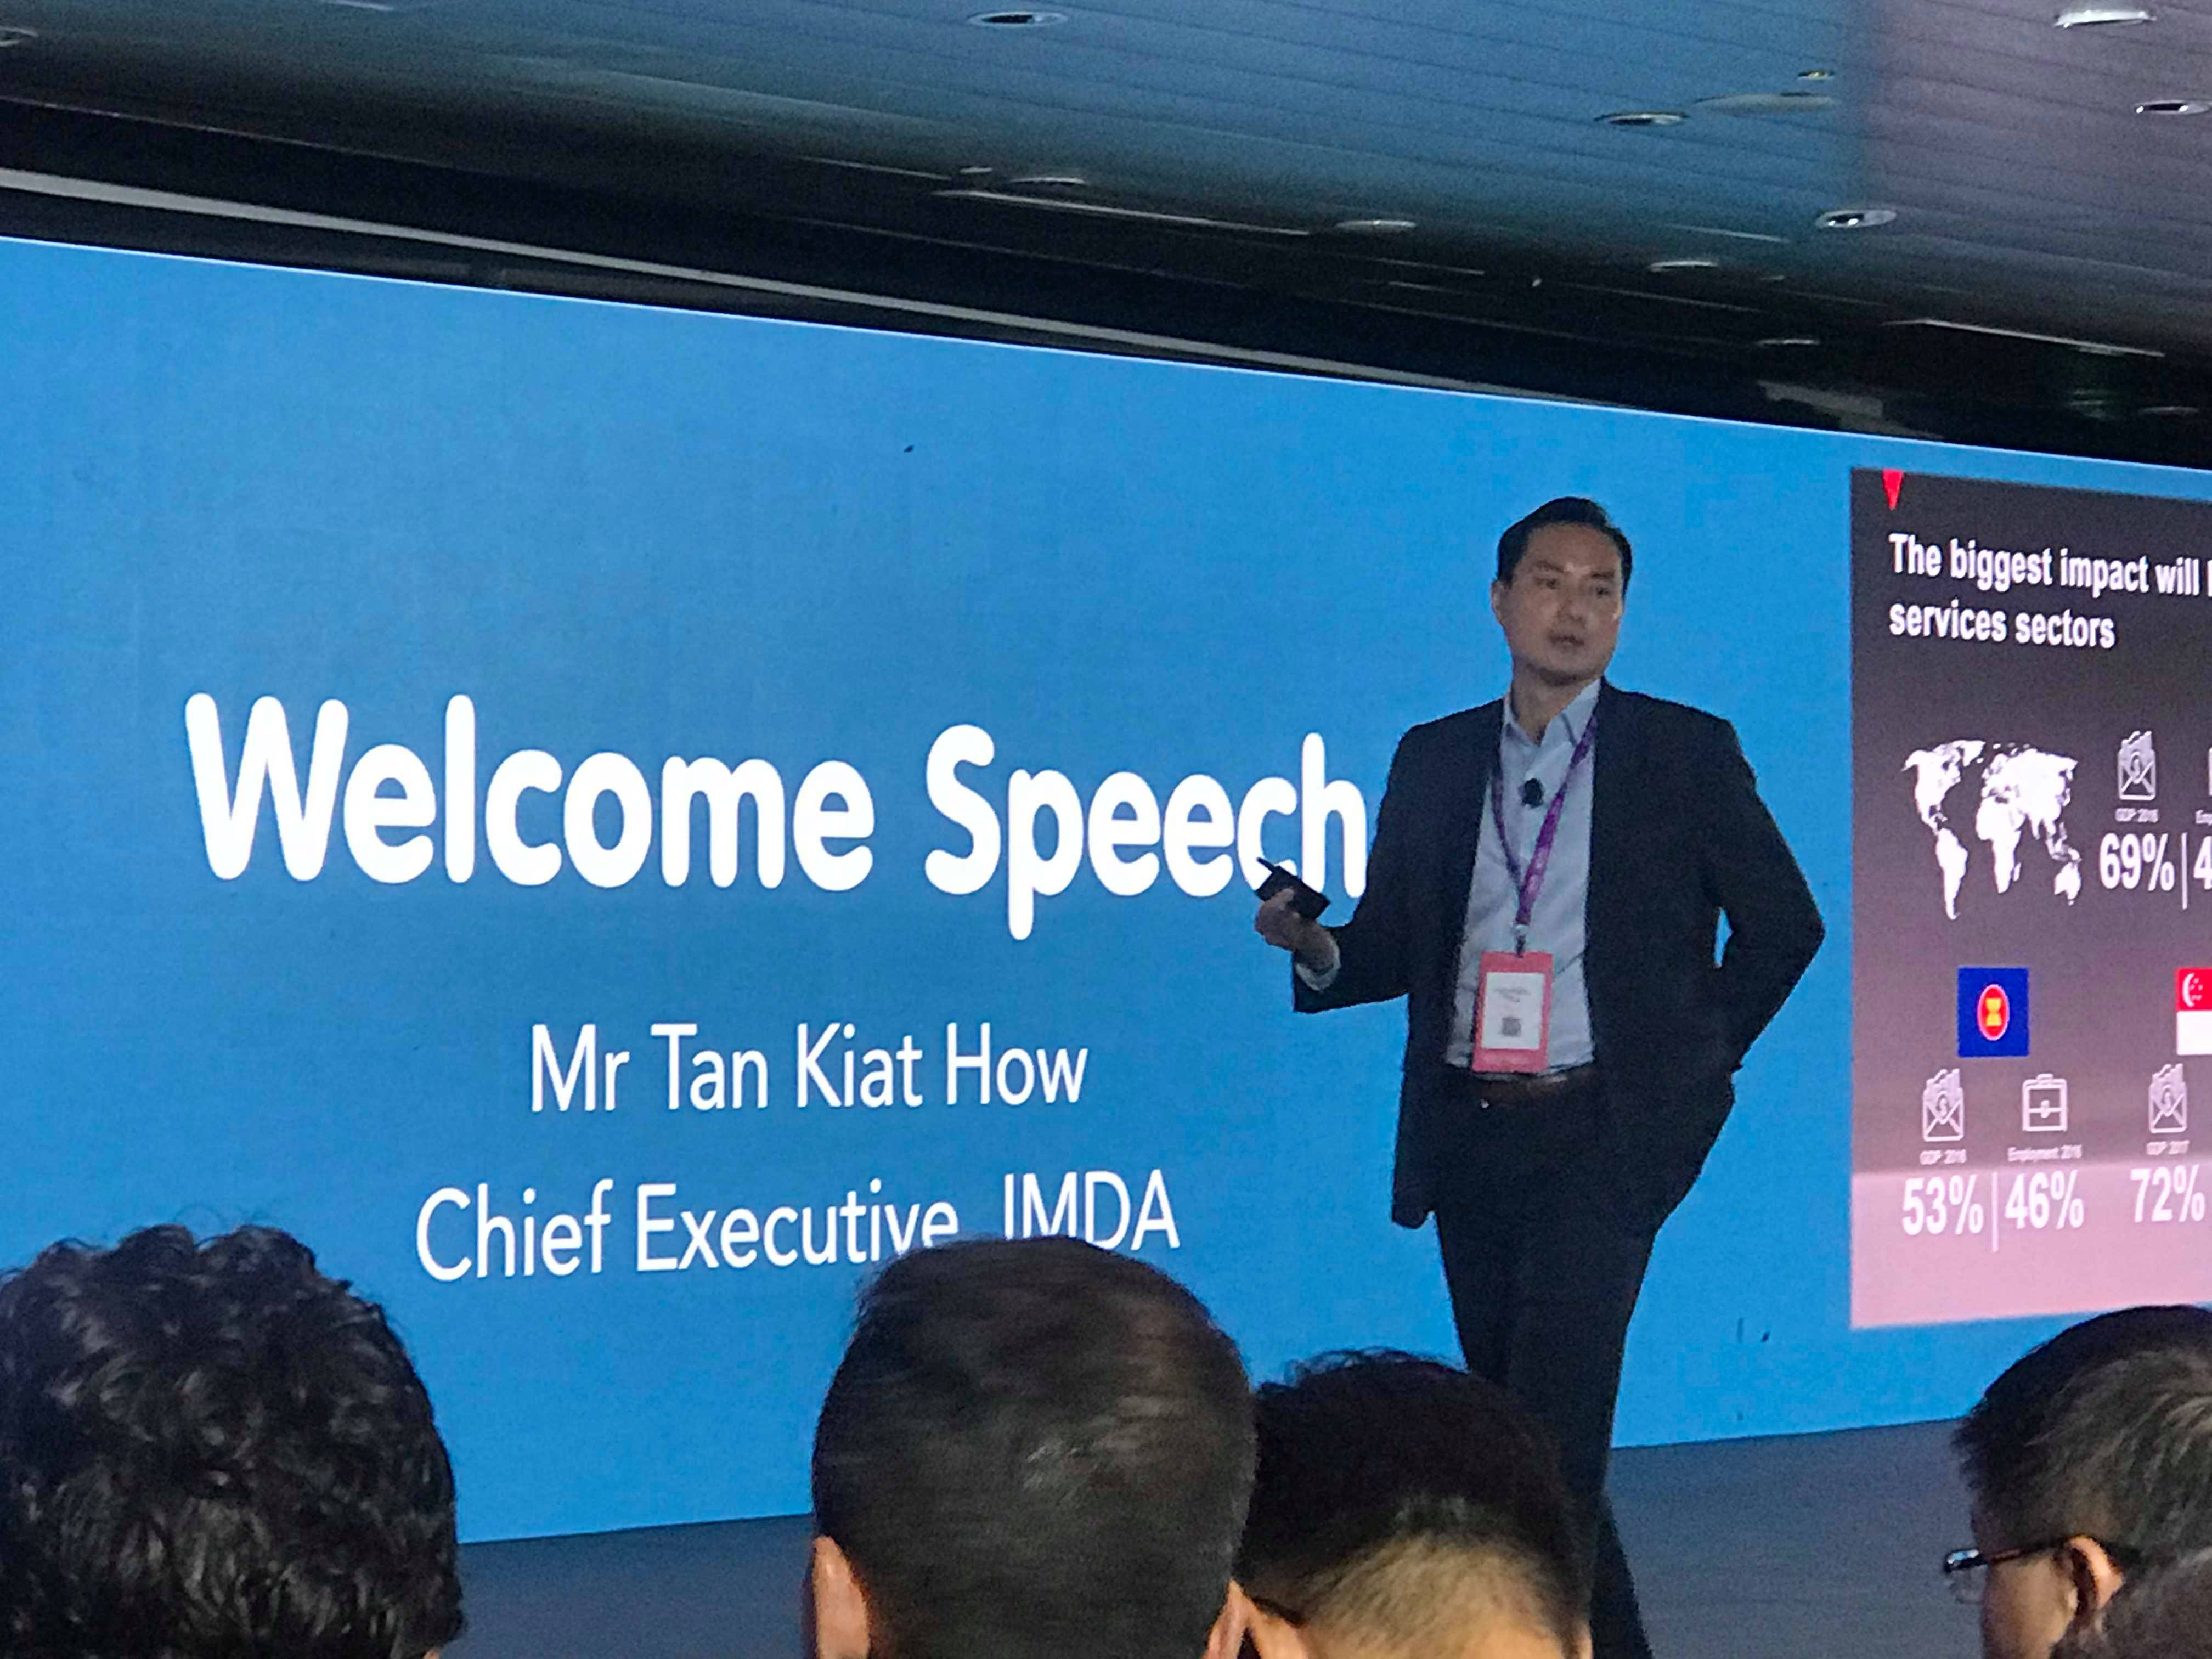 Tan Kiat How, IMDA's Chief Executive, speaks at the event. Photo: Liem Nguyen